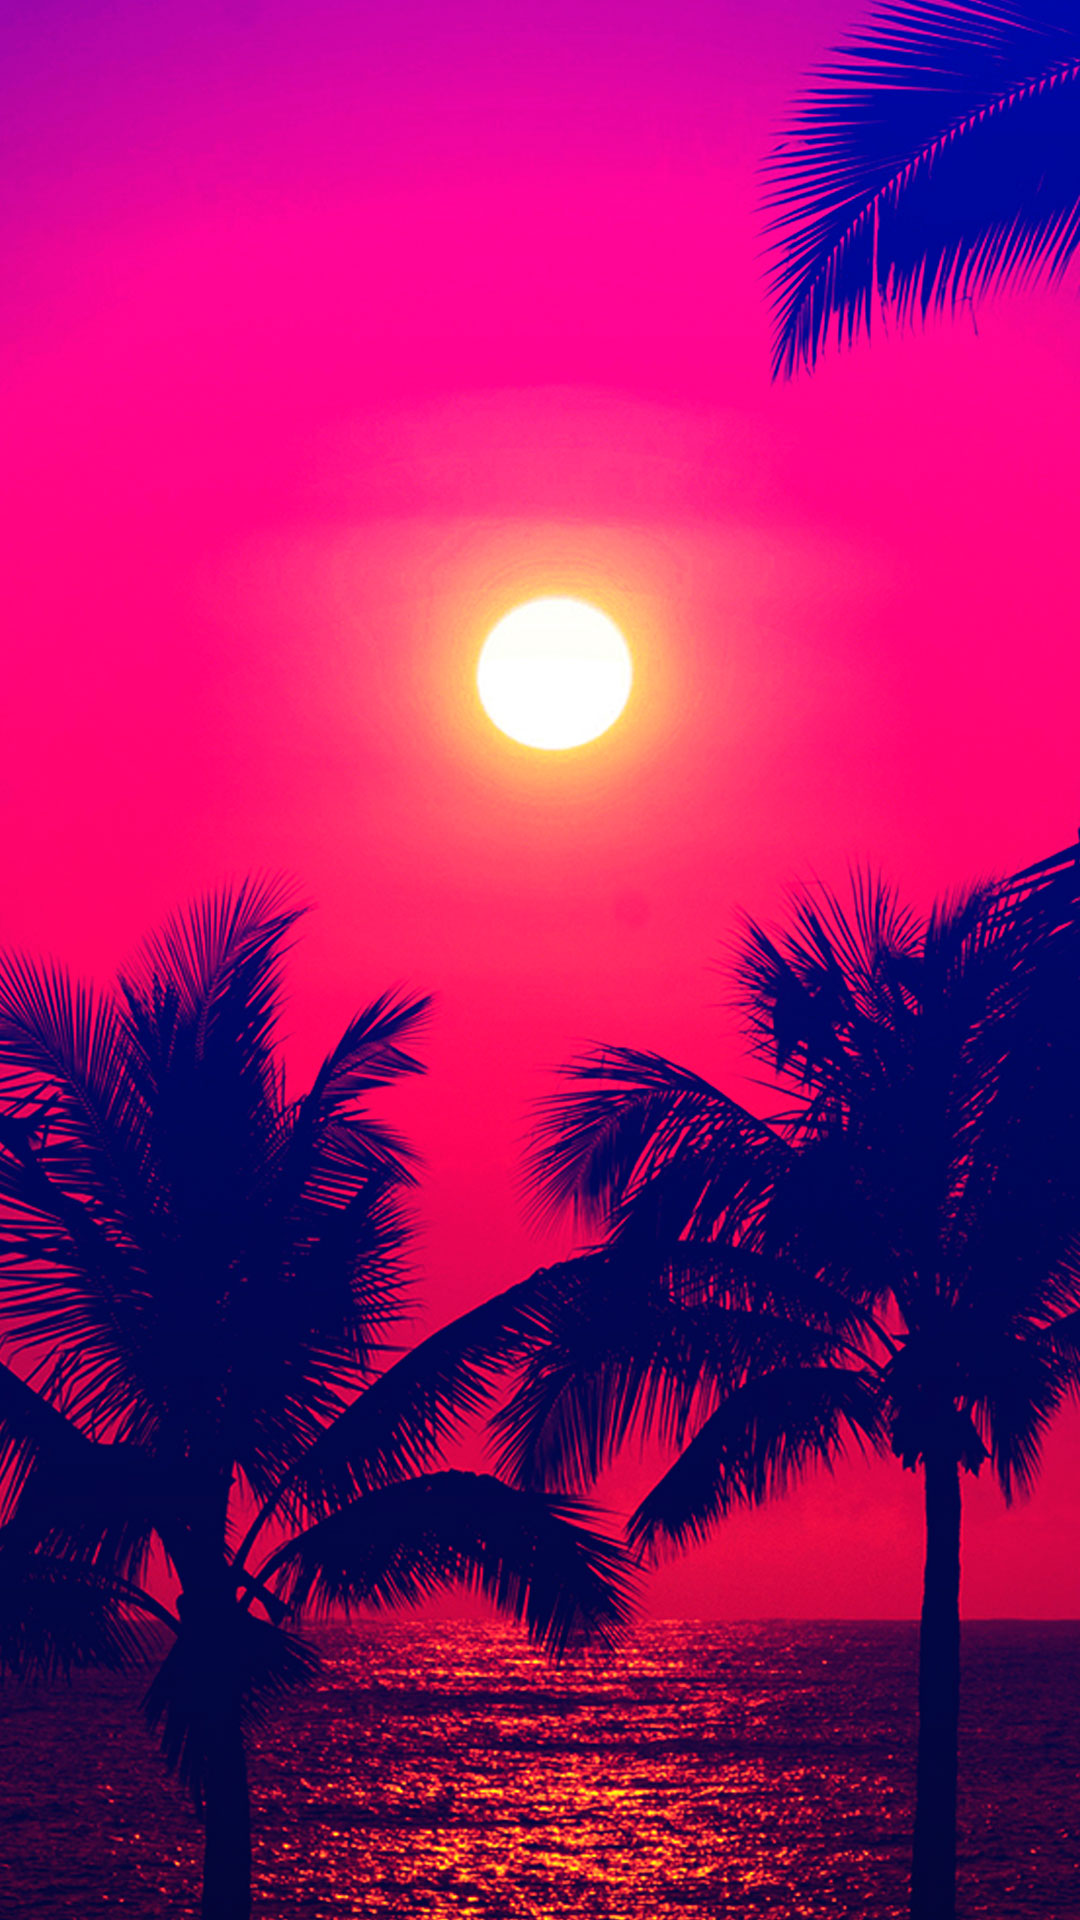 iPhone wallpaper sunset1 3Wallpapers : notre sélection de fonds d'écran du 30/03/2018